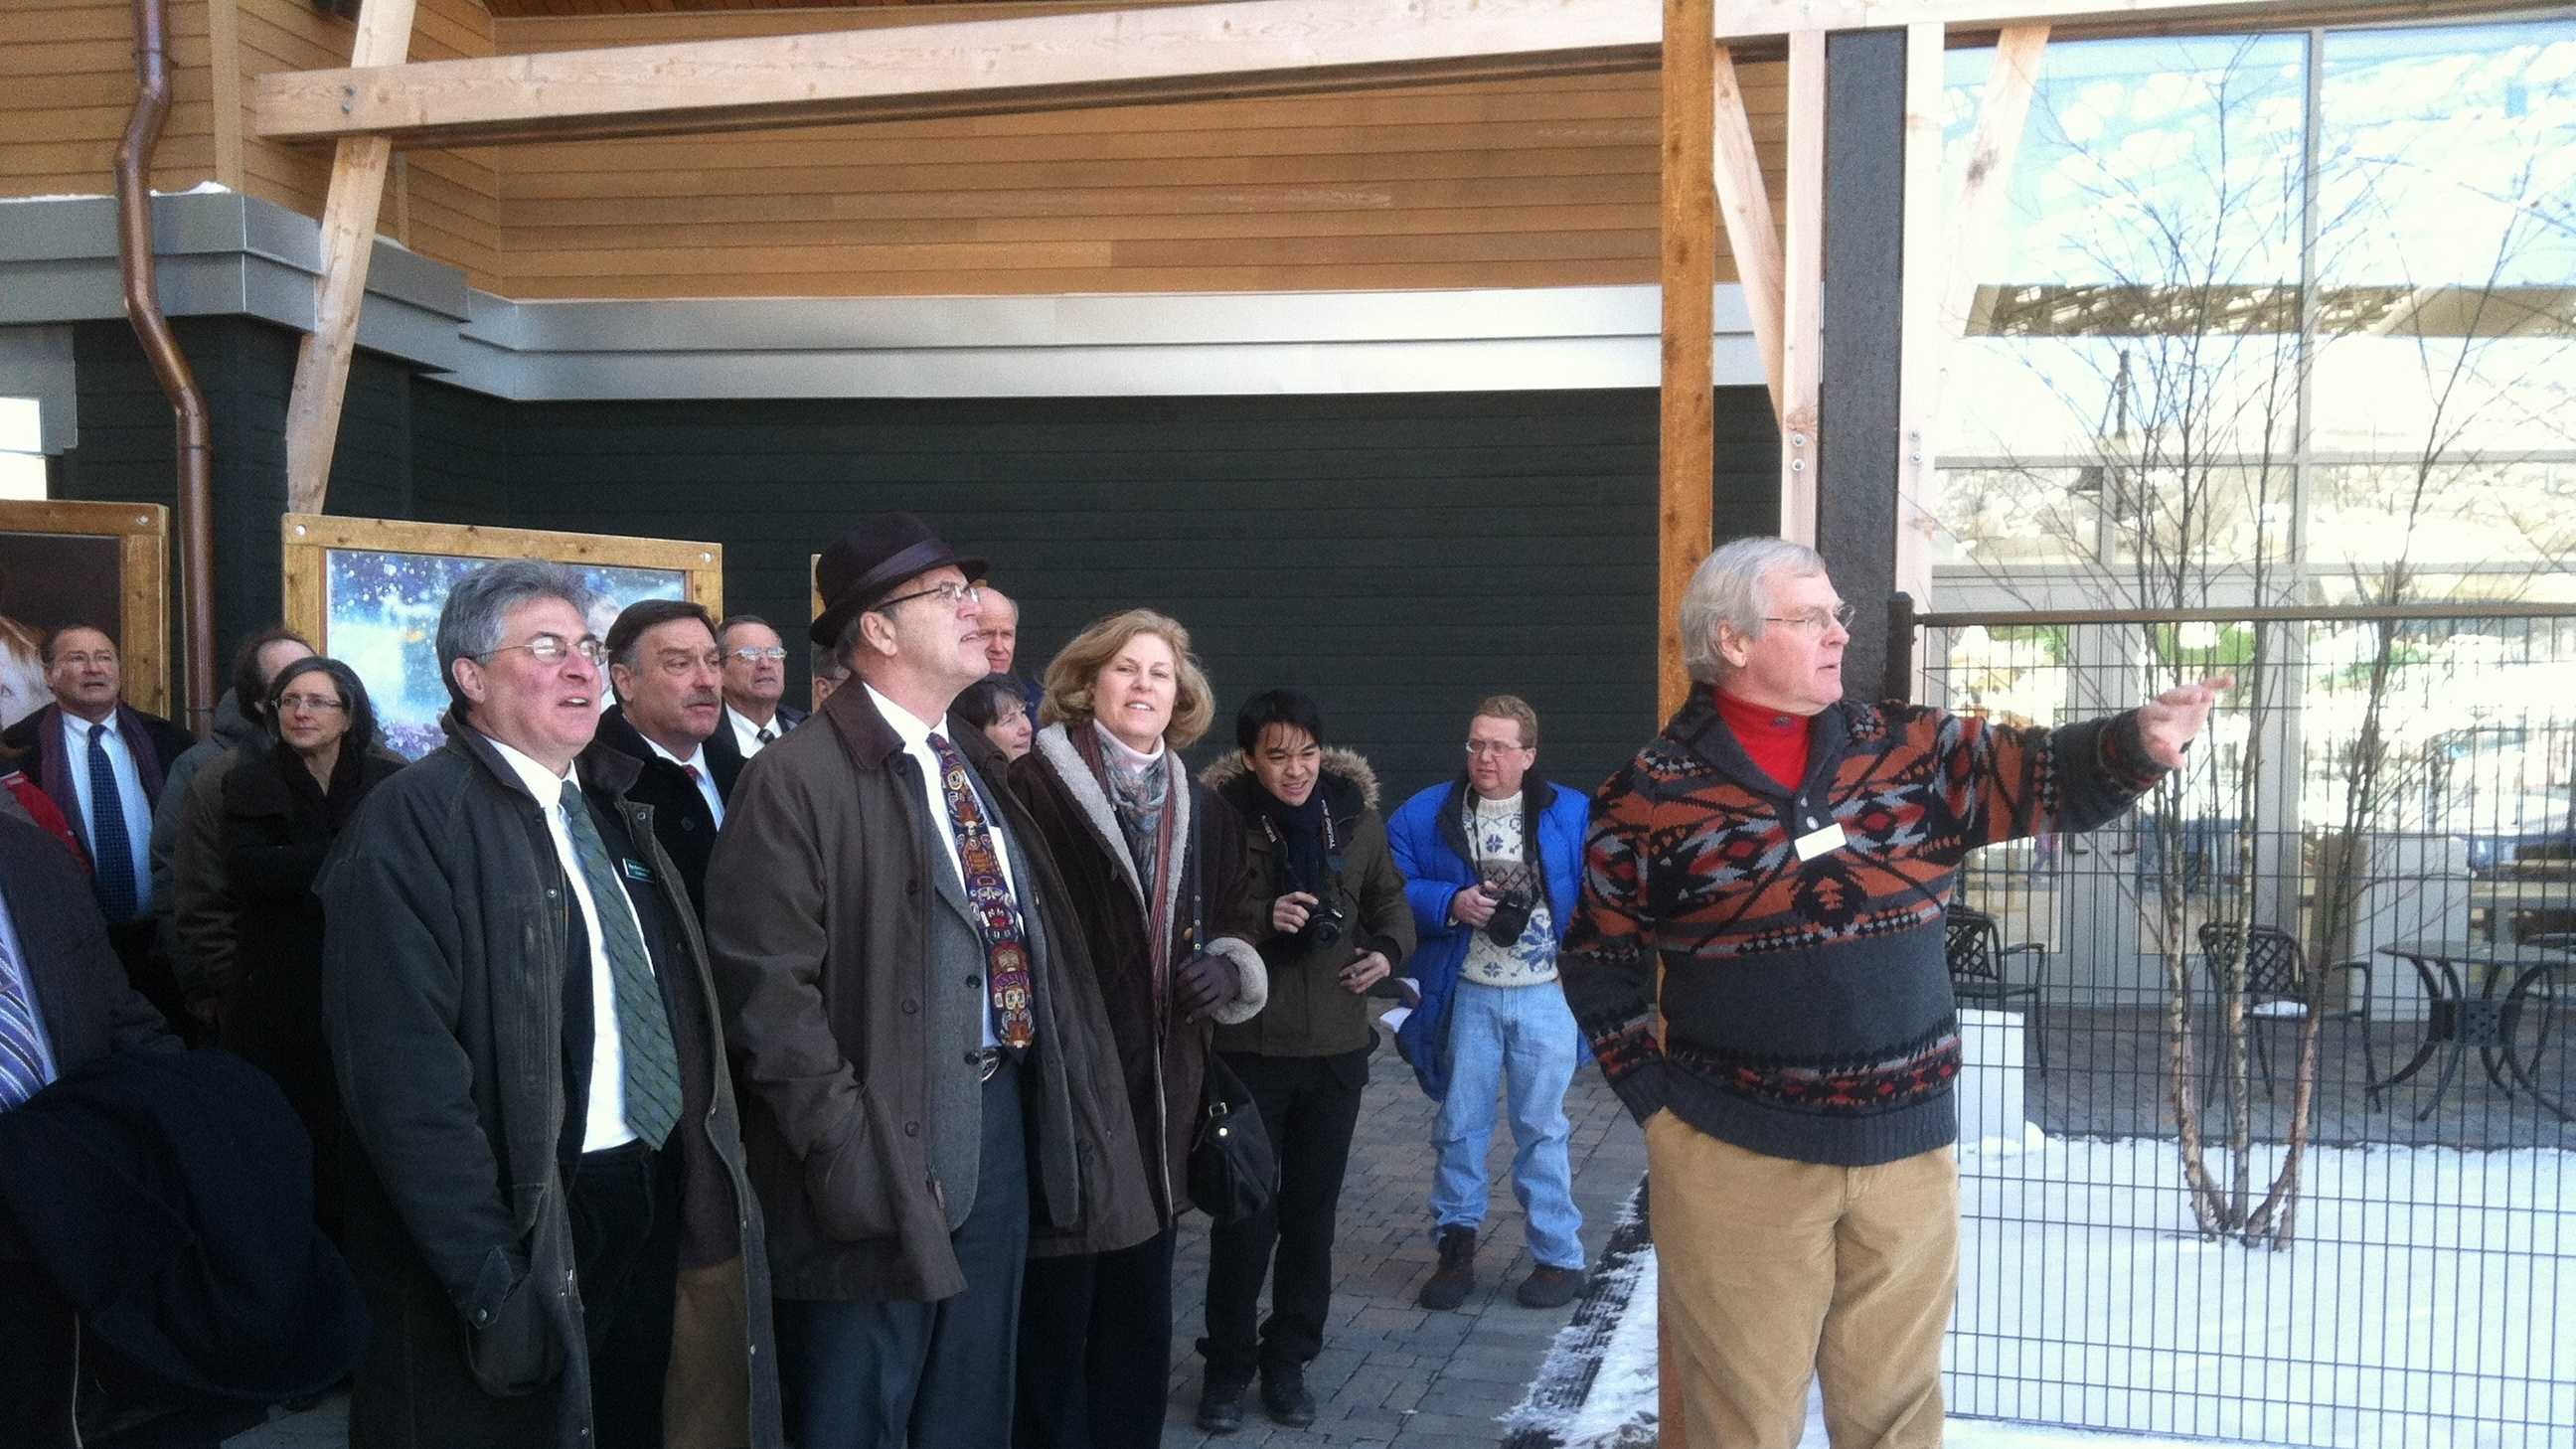 Jay Peak President Bill Stenger shows visiting state lawmakers some of the first rate amenities he's added since 2008 thanks to $275 million in EB-5 investment capital.